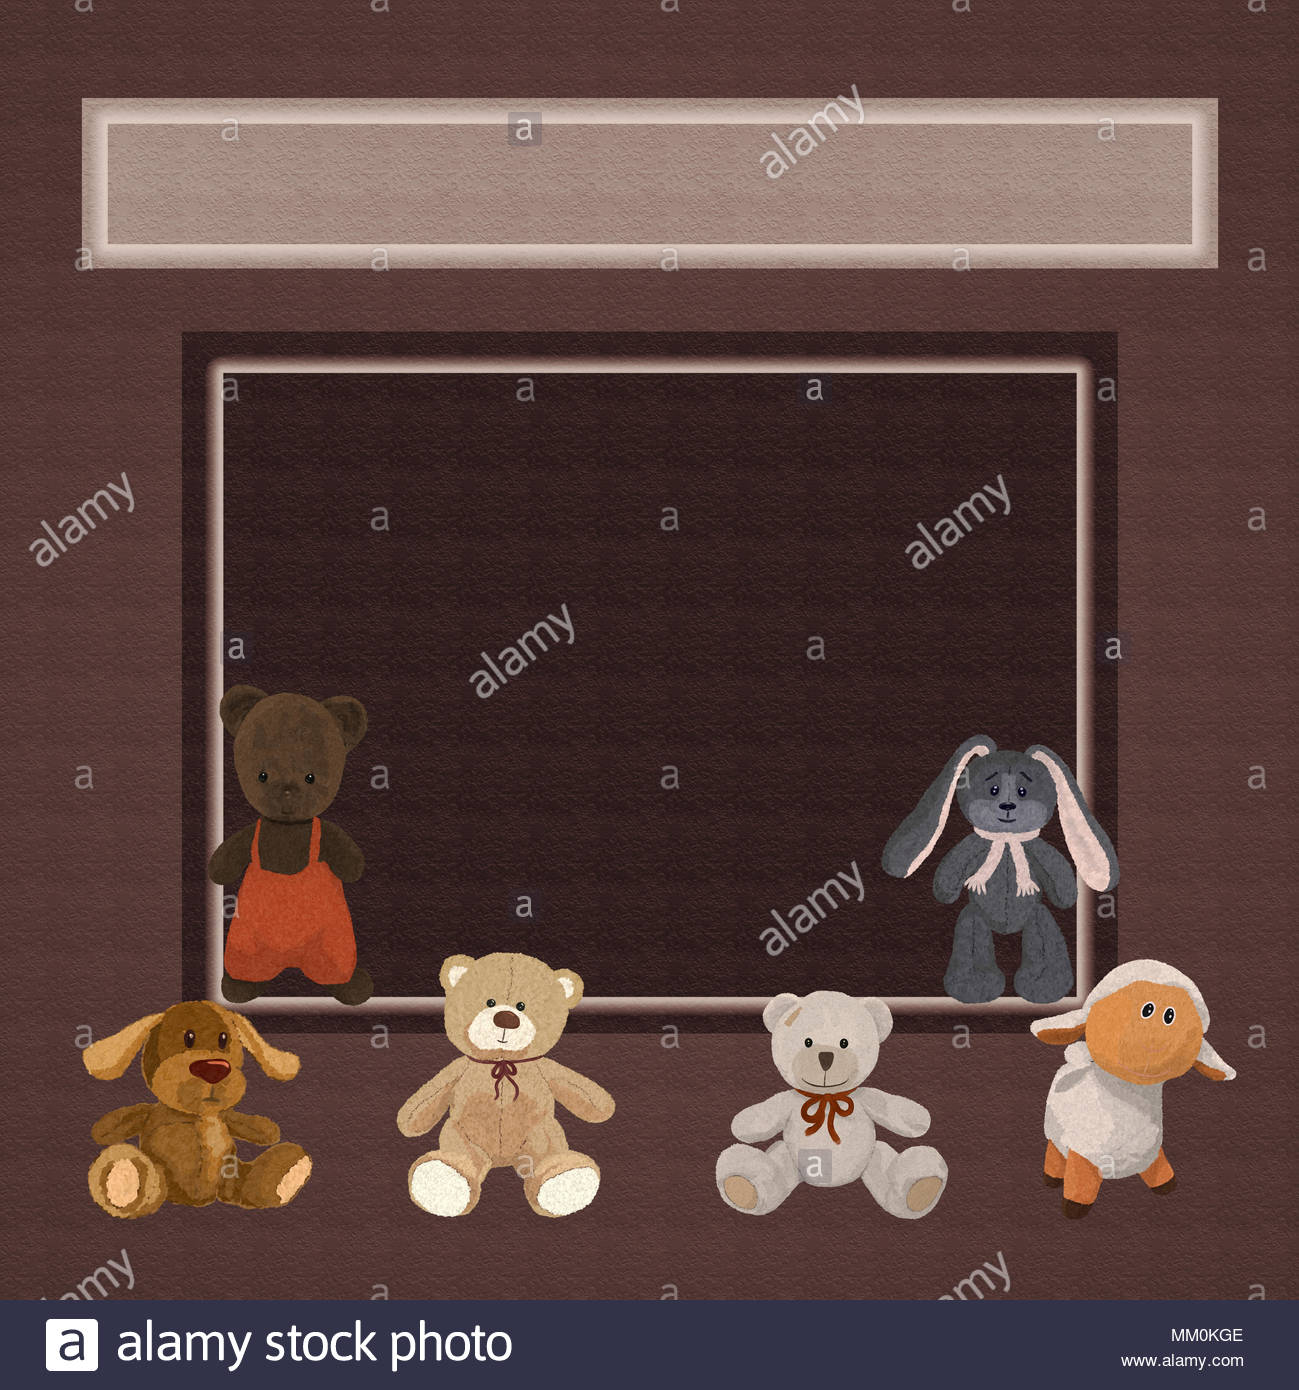 Brown Background With Six Cute Plush Toys And A Frame Stock Photo